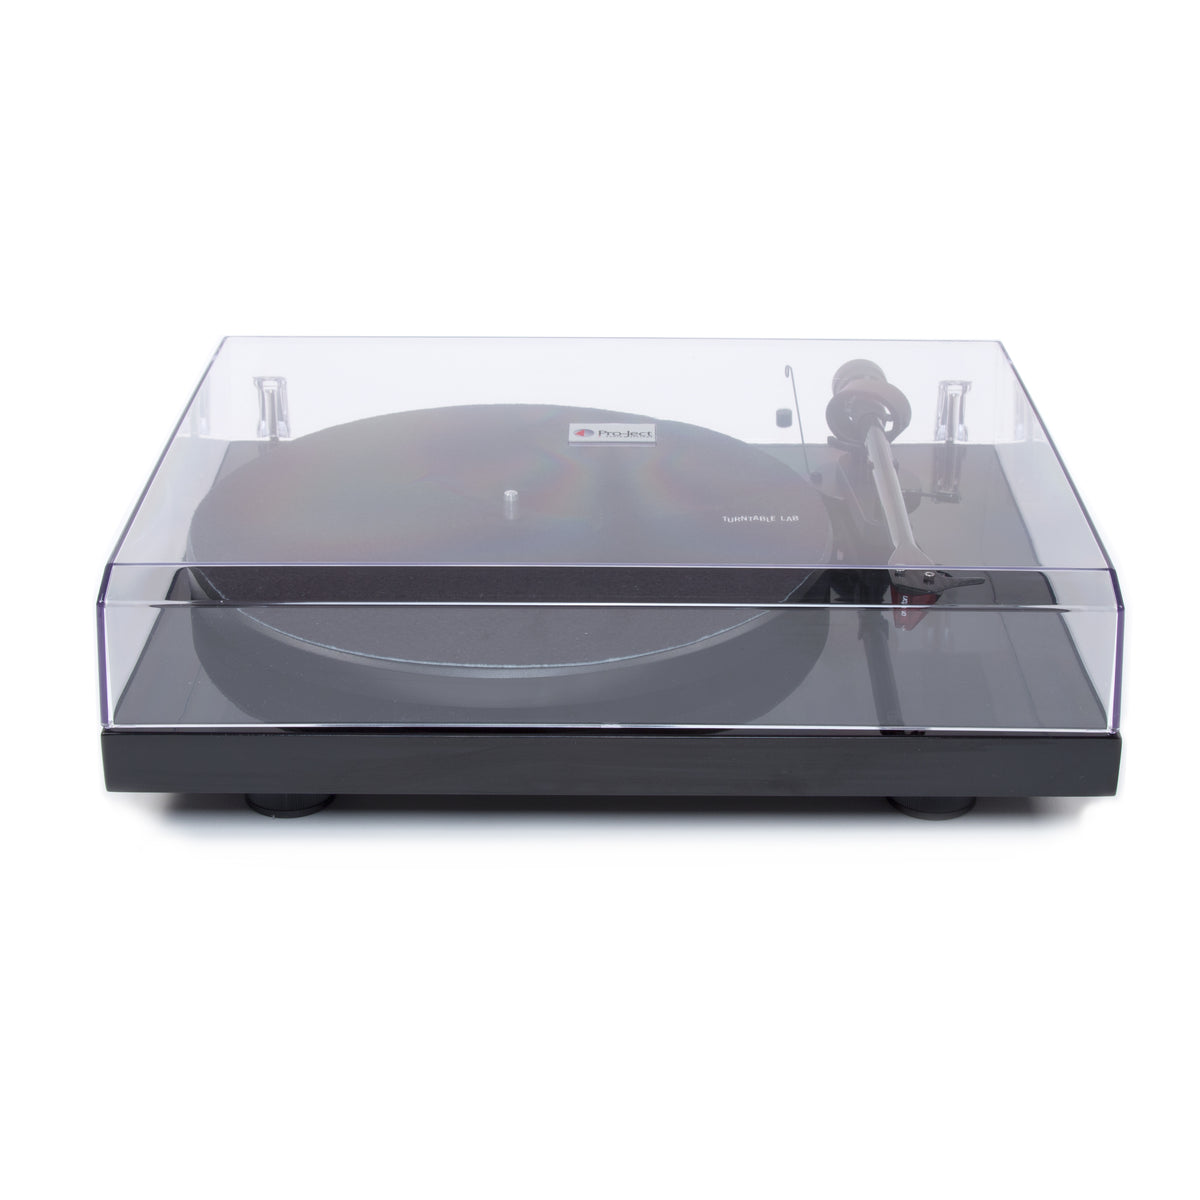 Pro-Ject: Debut Carbon DC Turntable - Gloss Black lid closed